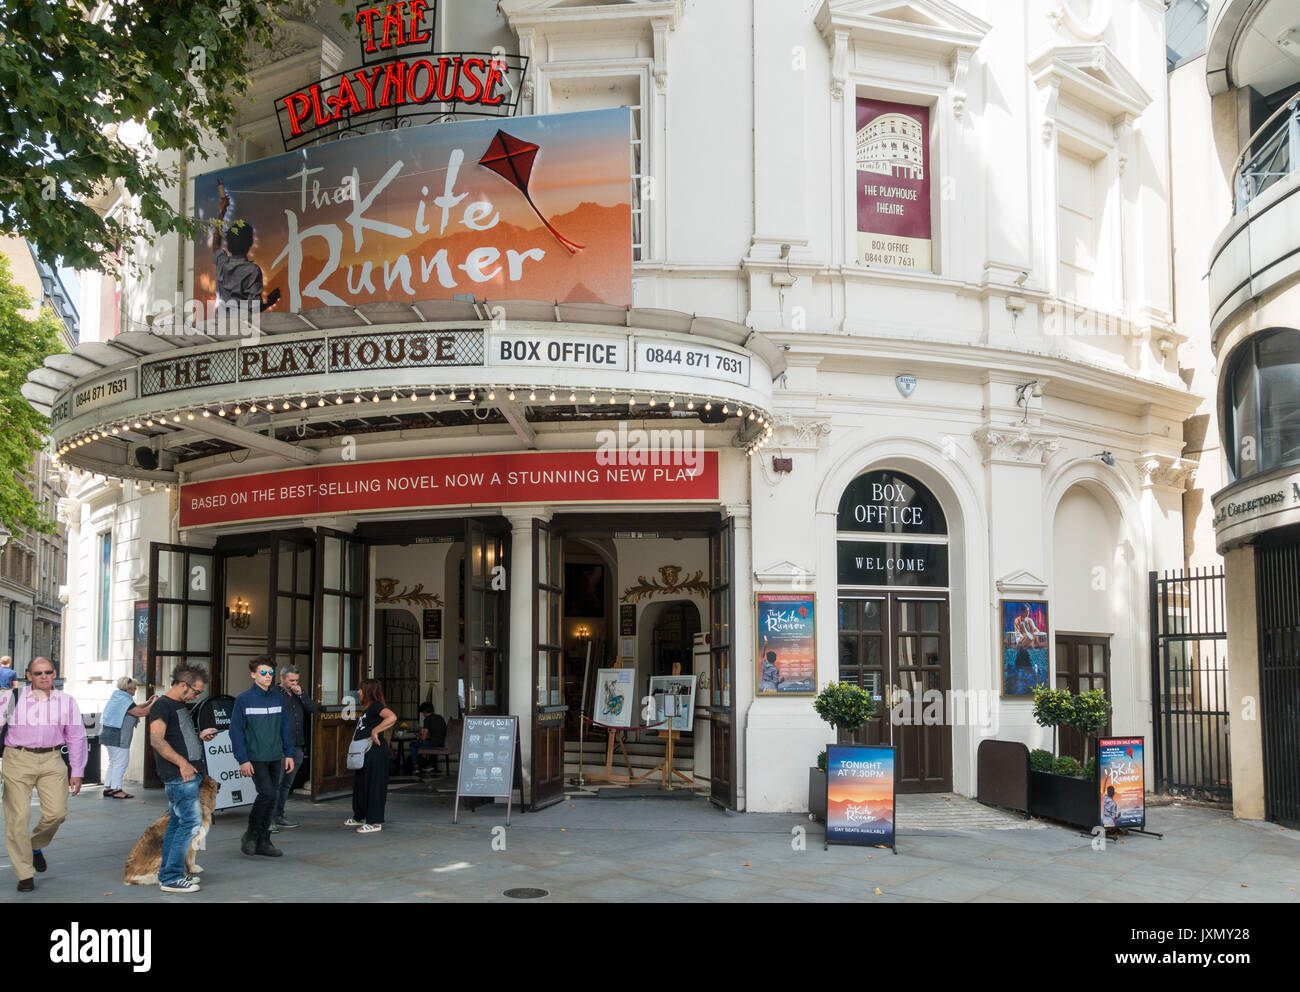 the-kite-runner-at-the-playhouse-theatre-northumberland-ave-london-JXMY28.jpg